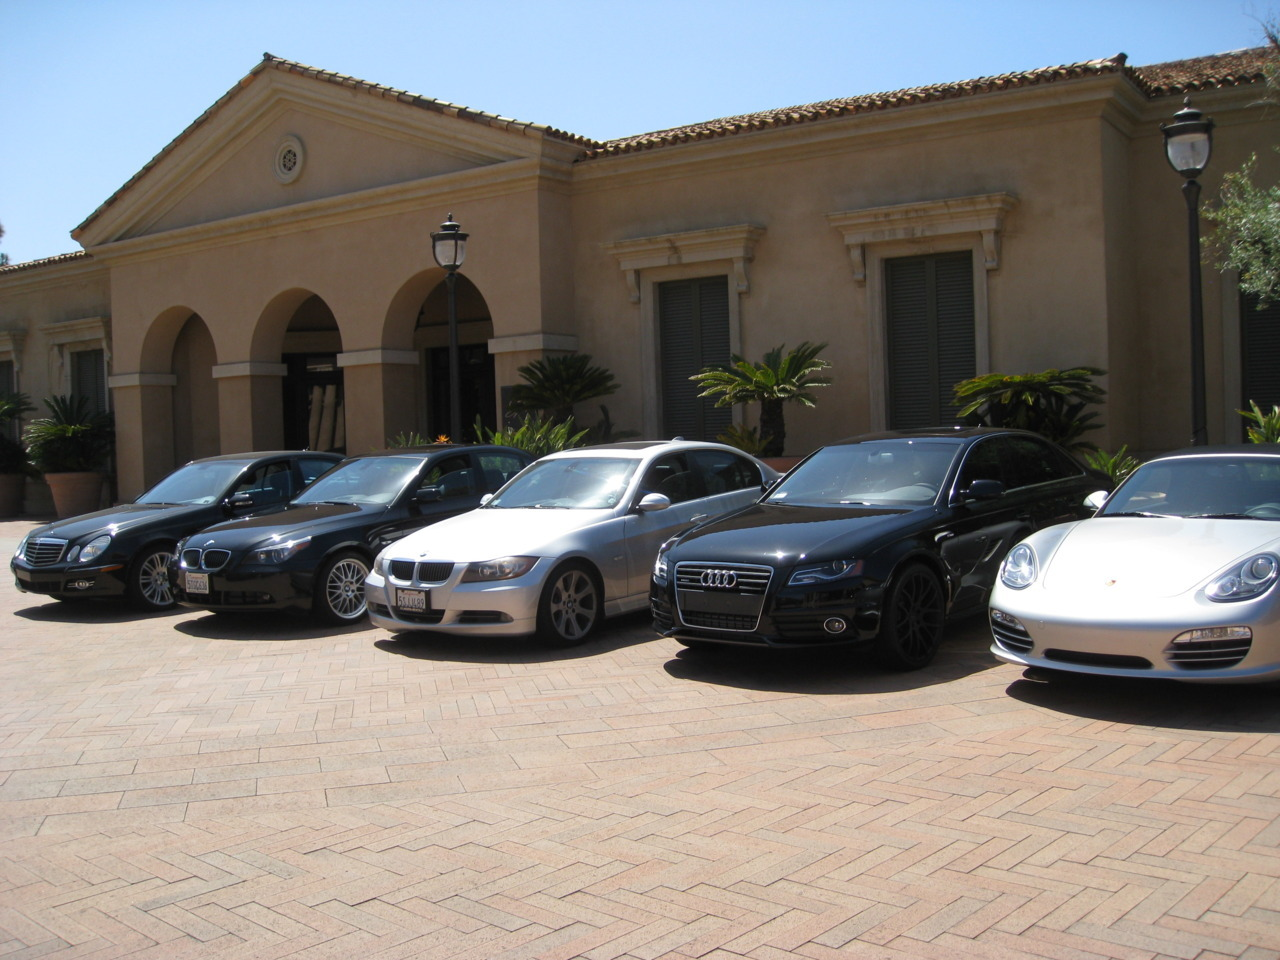 Cars (Pelican Hill Resort)